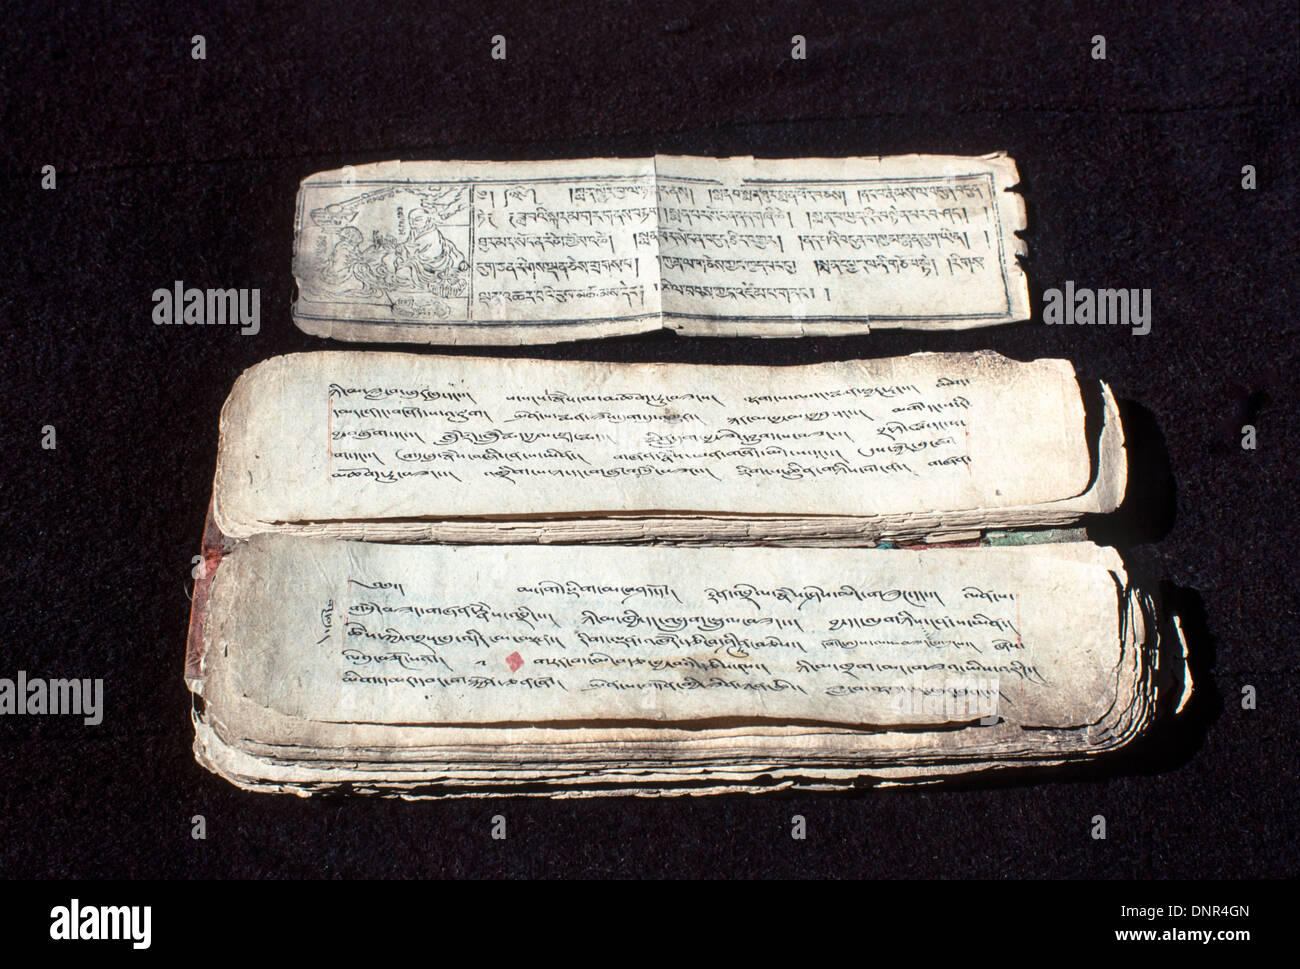 Sacred Tibetan medical text used by local and itinerant